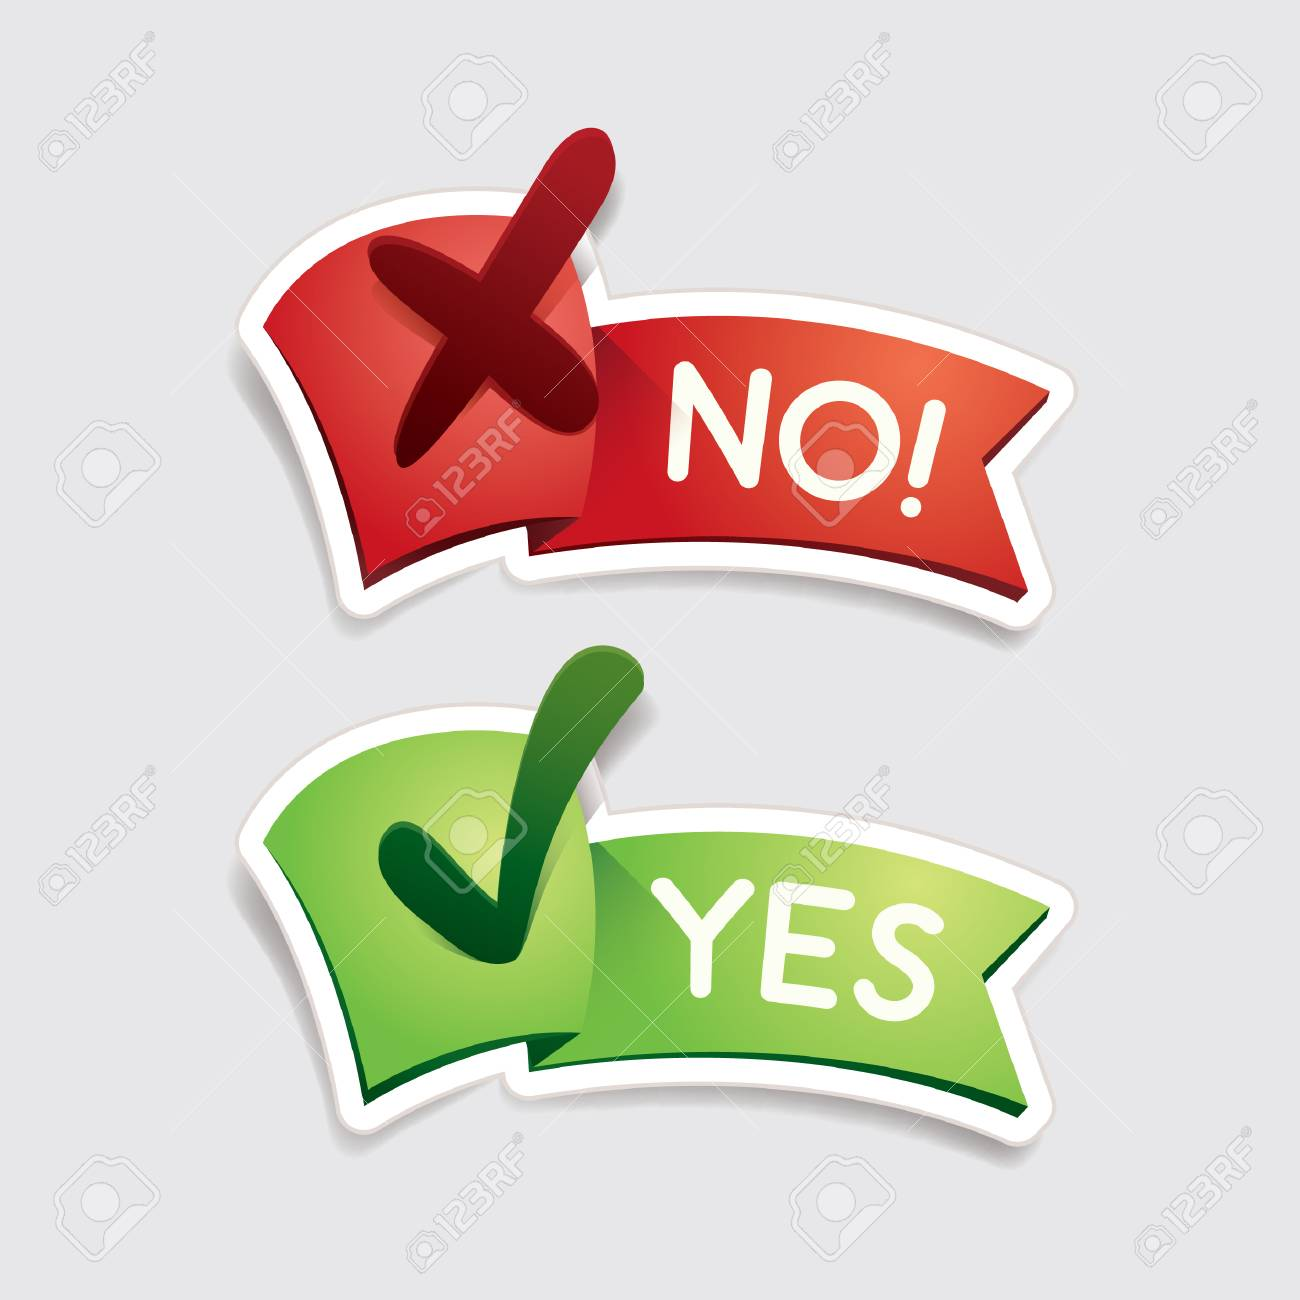 yes and no banners - 106674555